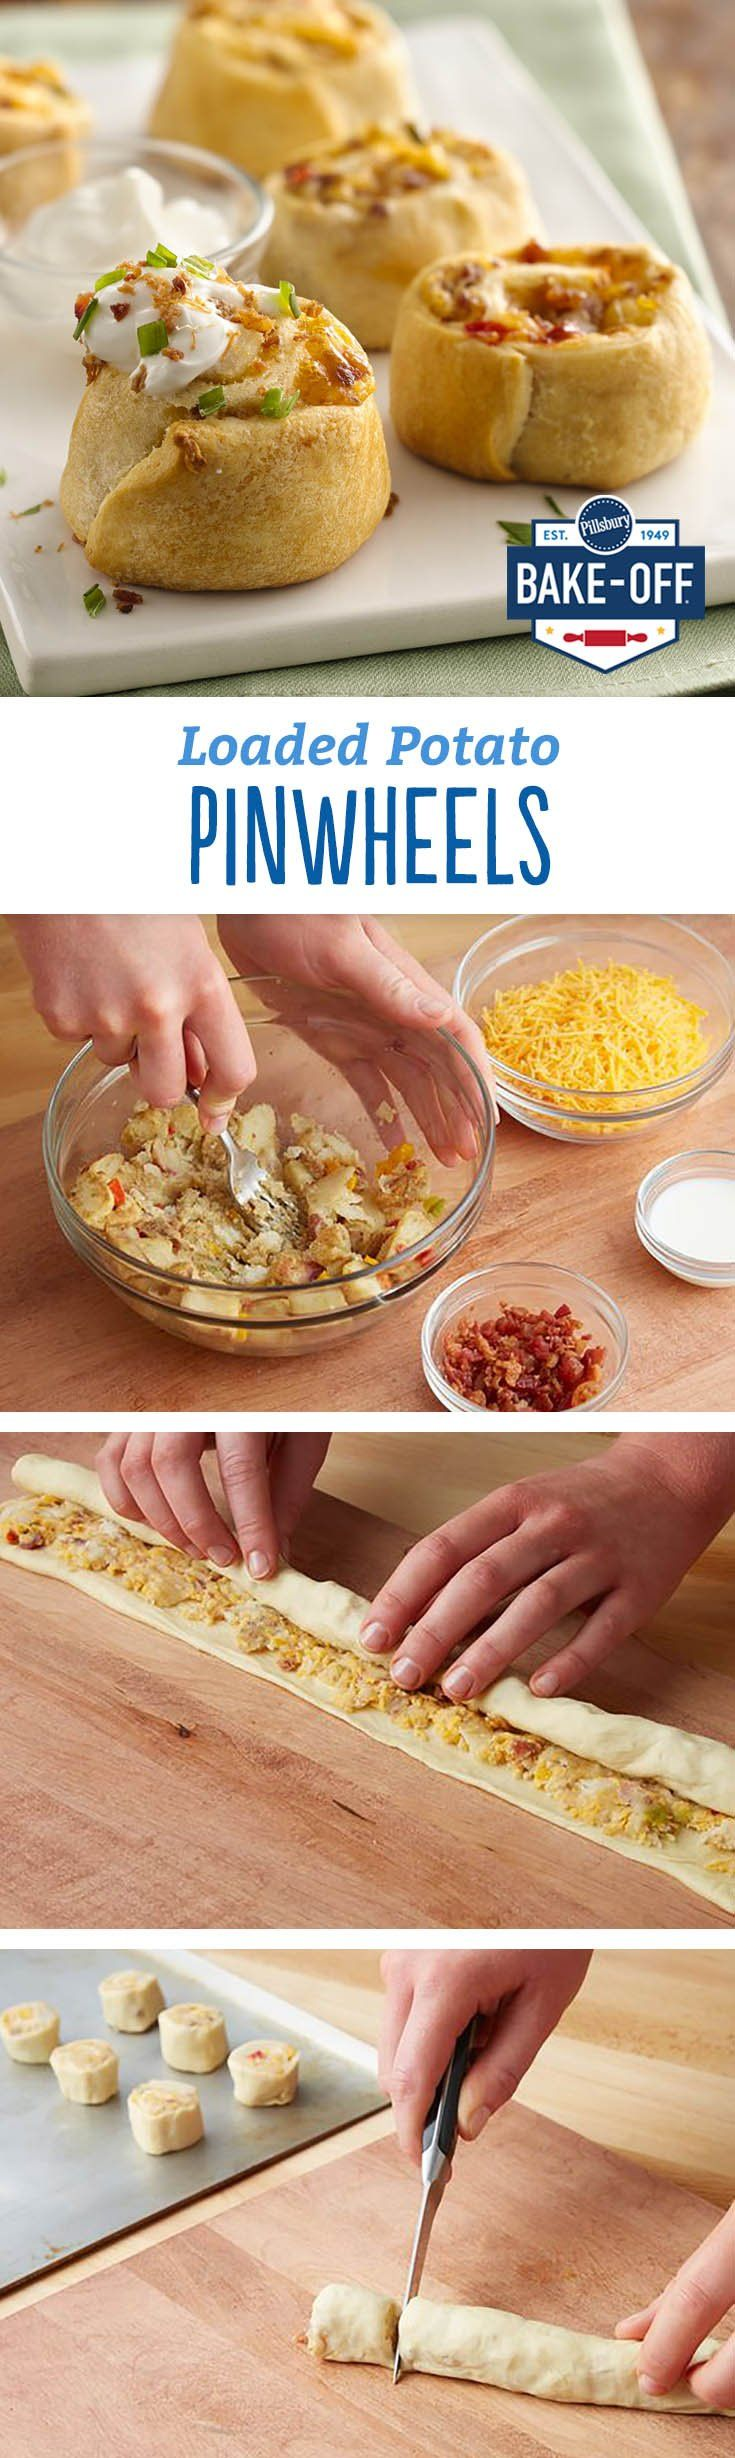 Cheesy potatoes, bacon and crescent dough come together for an appetizer that's all kinds of delicious. It's no surprise why these pinwheels are one of our highest-rated Bake-Off recipes. Easy, innovative and totally scrumptious.